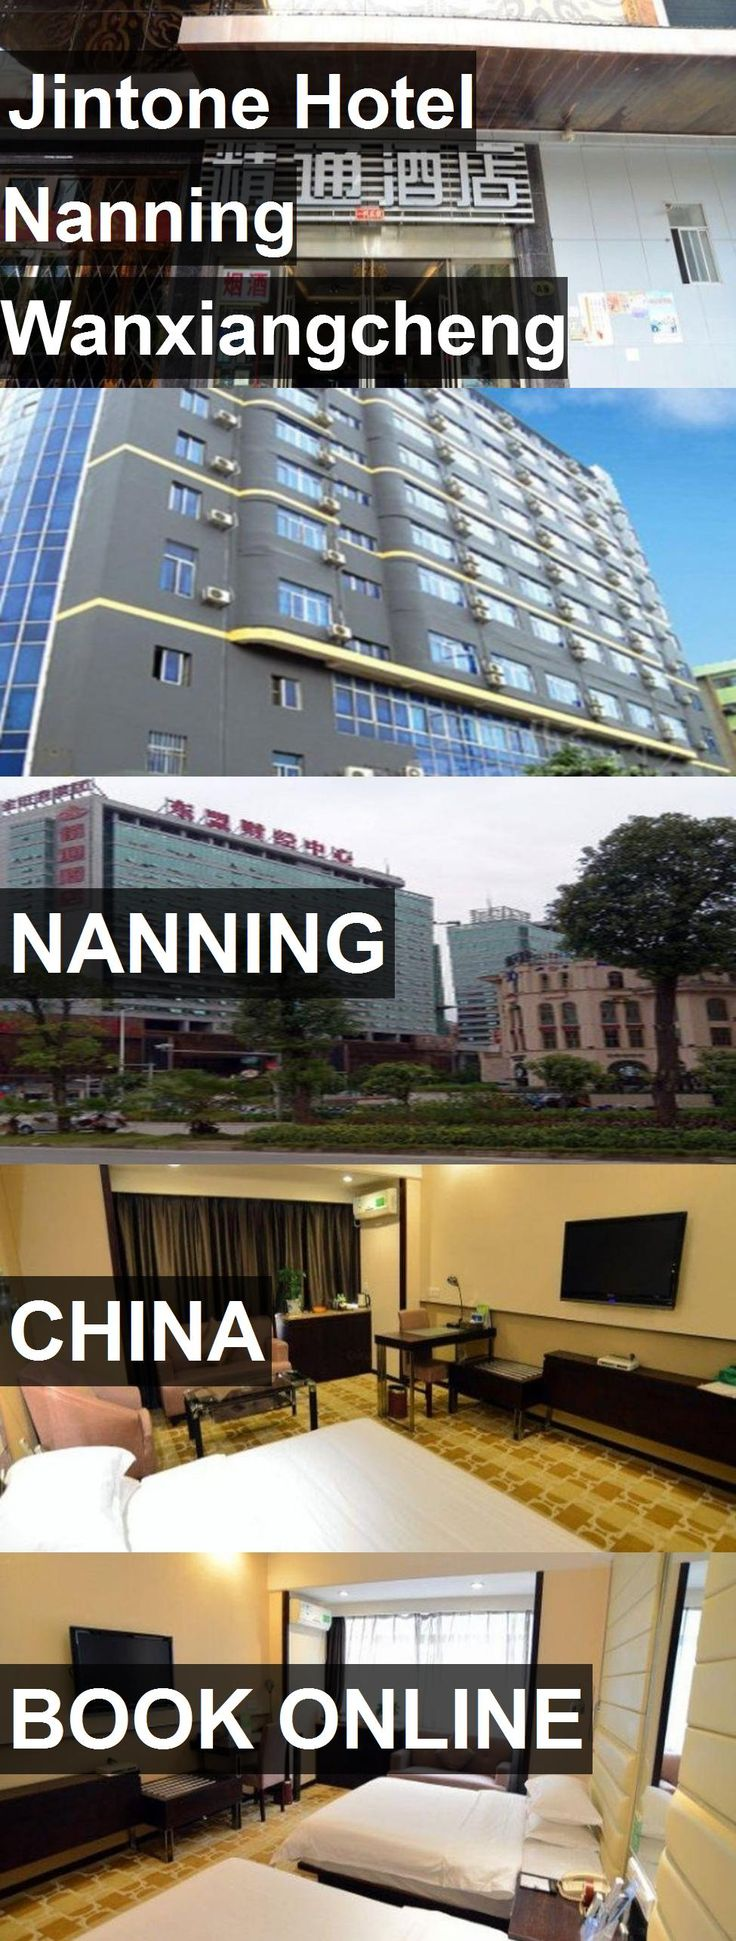 Jintone Hotel Nanning Wanxiangcheng Branch in Nanning, China. For more information, photos, reviews and best prices please follow the link. #China #Nanning #travel #vacation #hotel